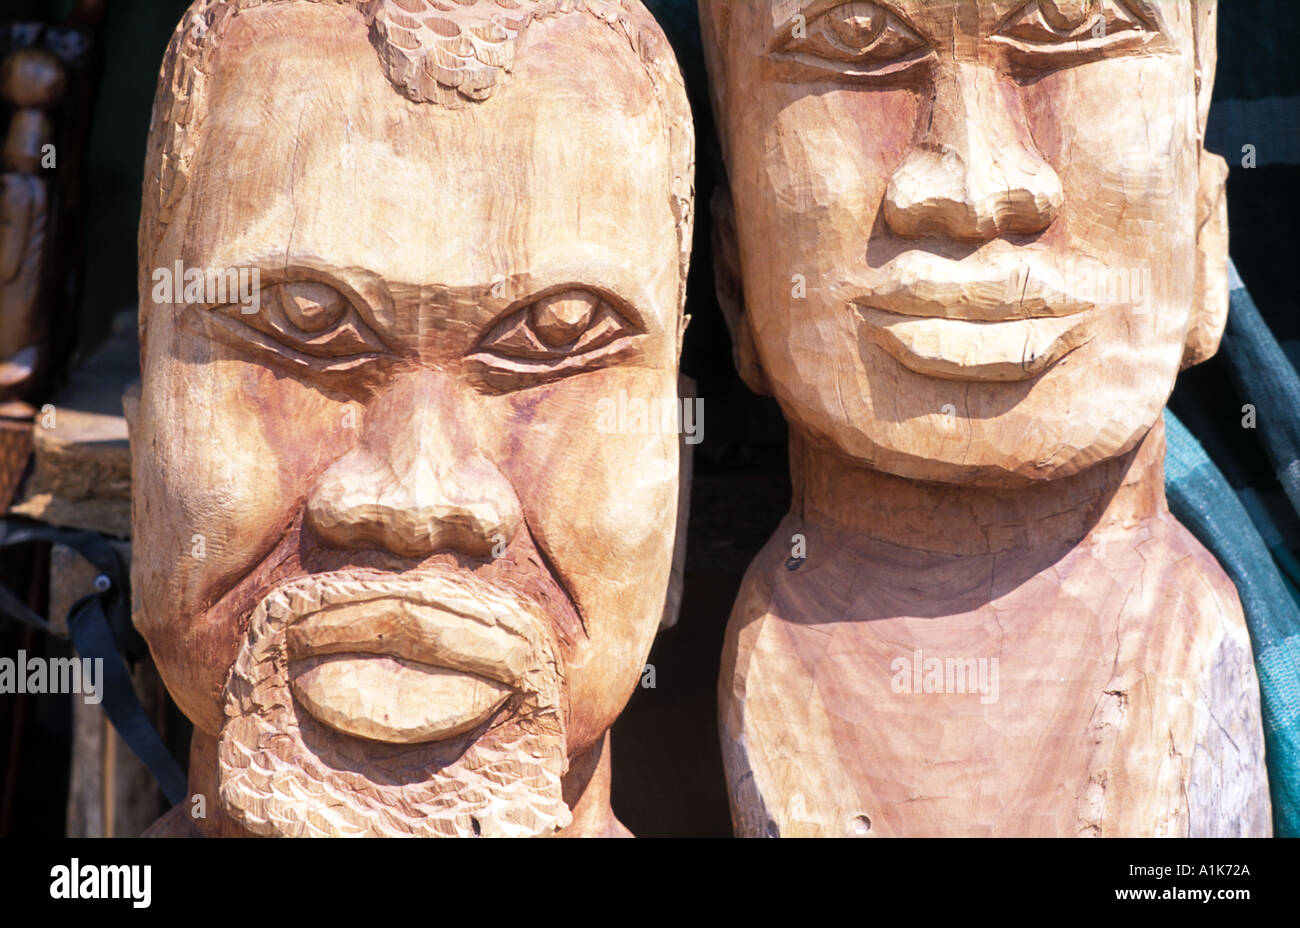 Tribal style wood carvings for sale Okahandja Namibia - Stock Image